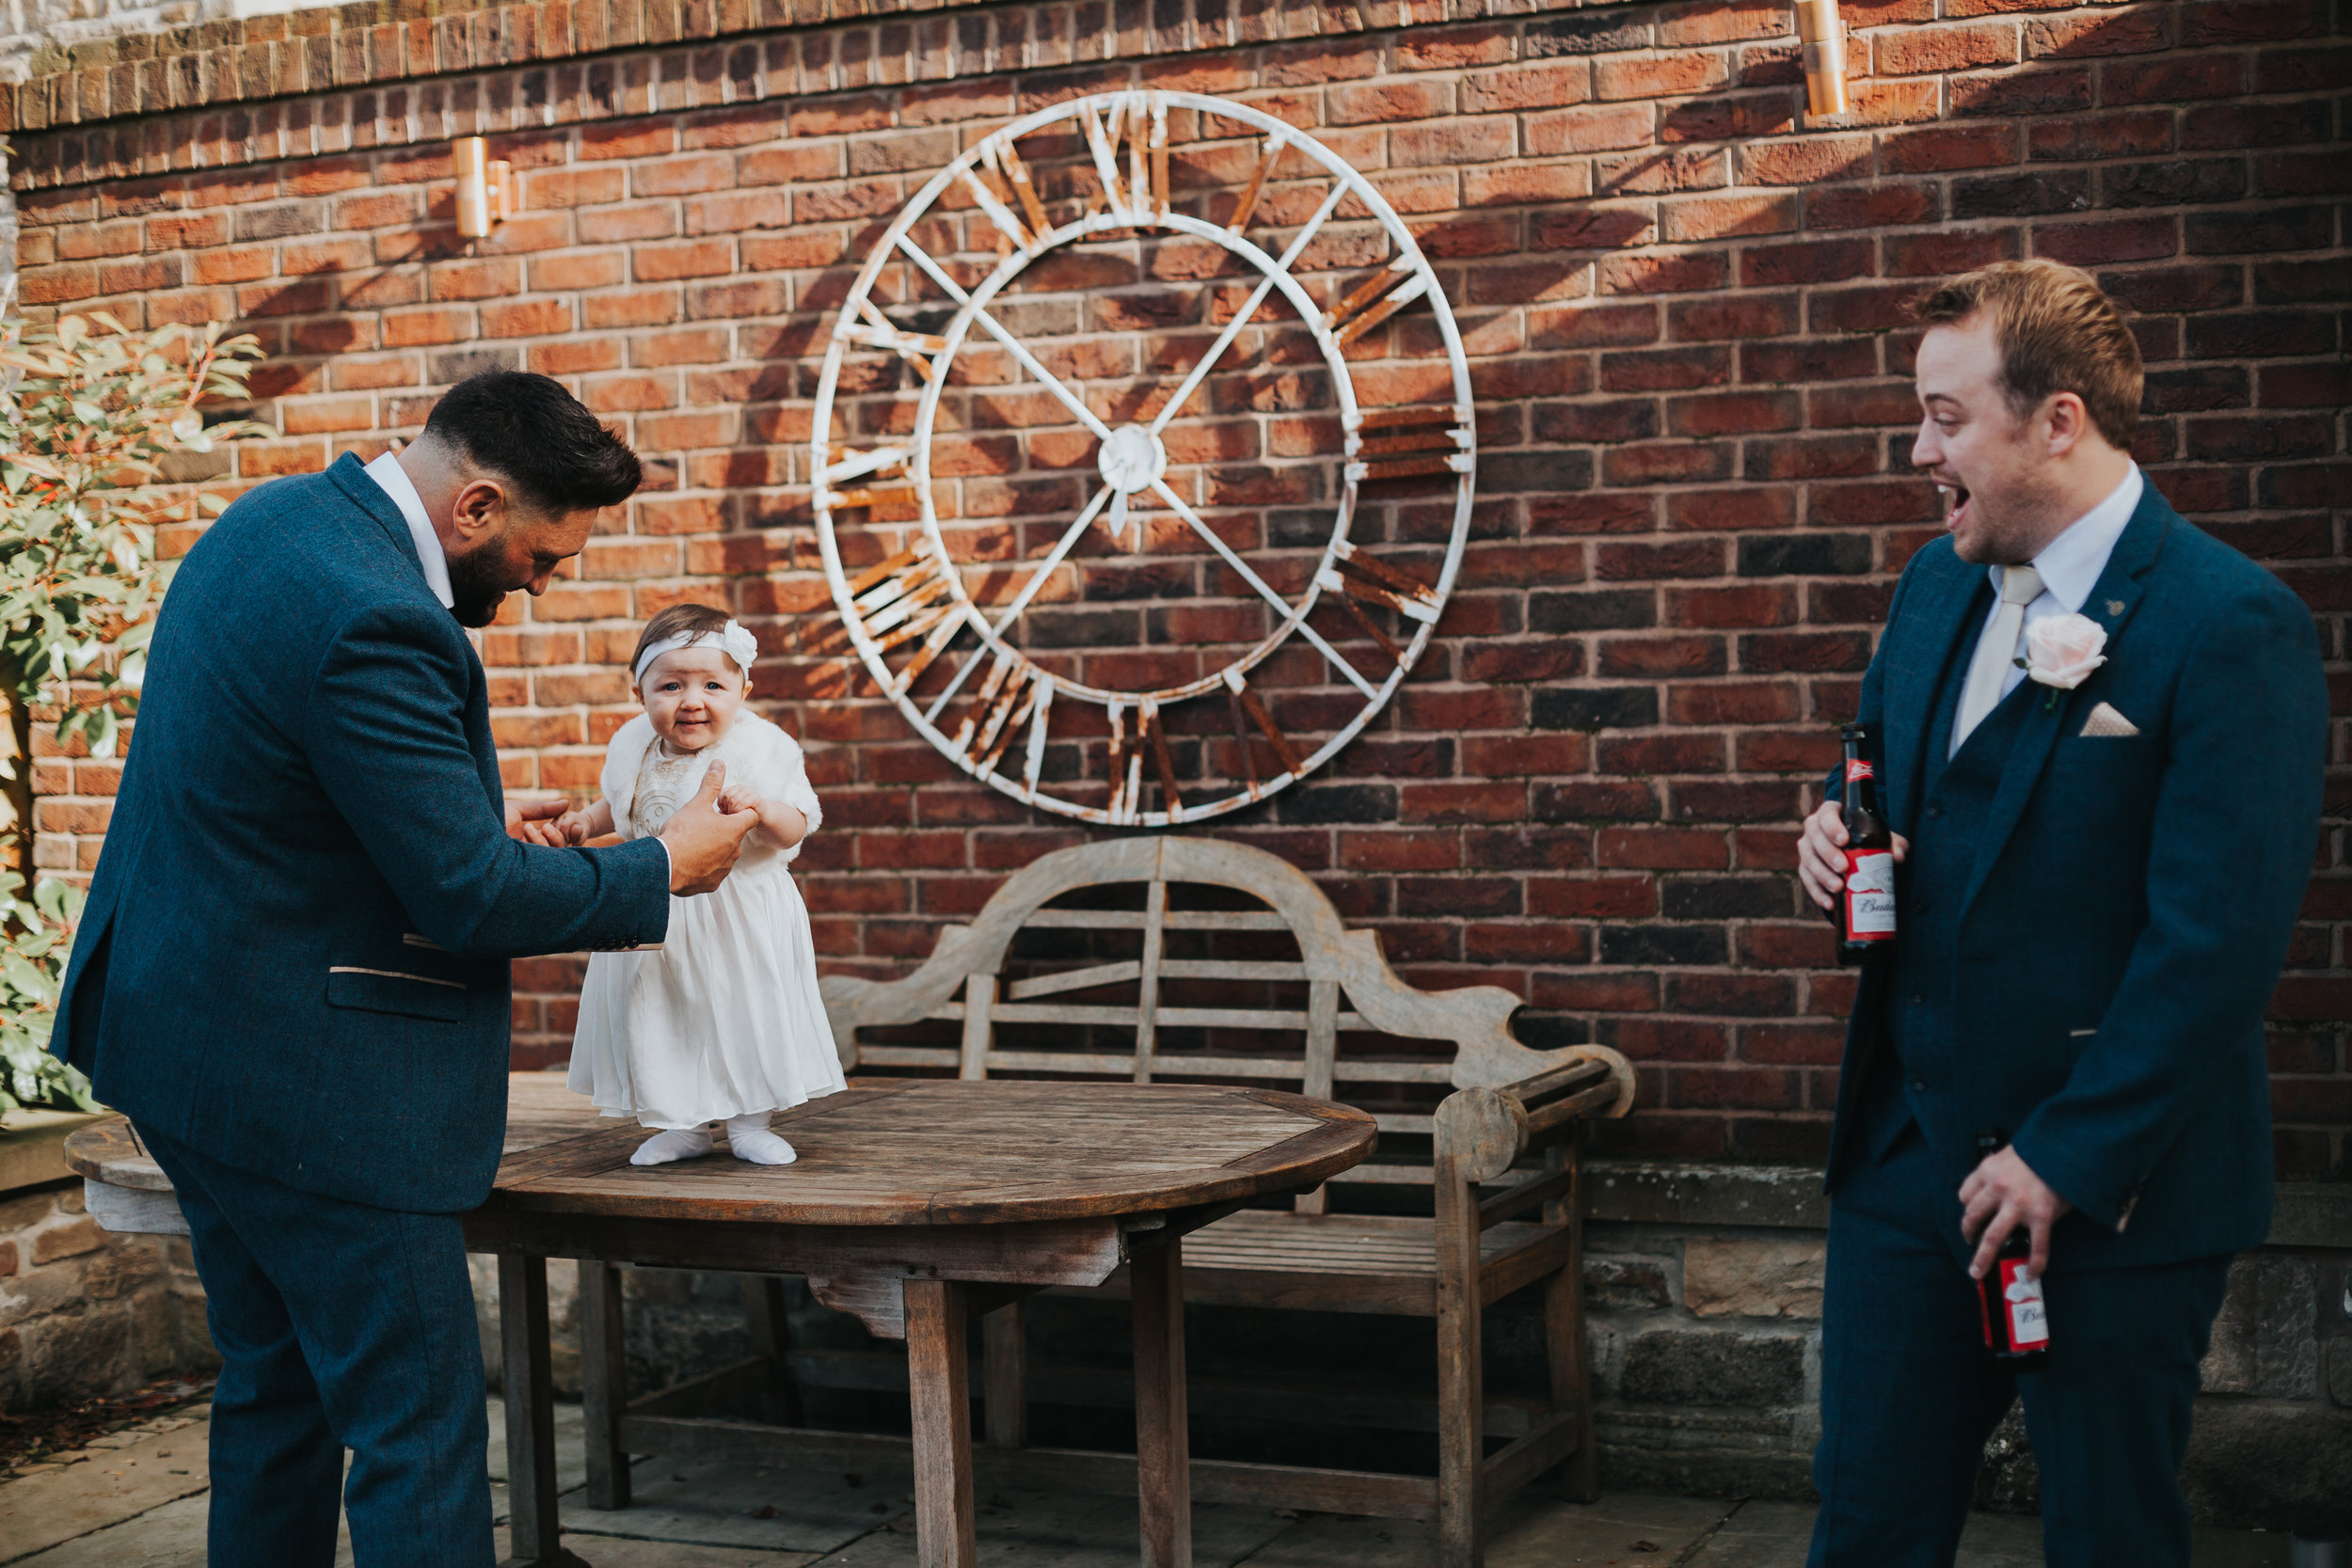 Little girl laughs with groomsmen.